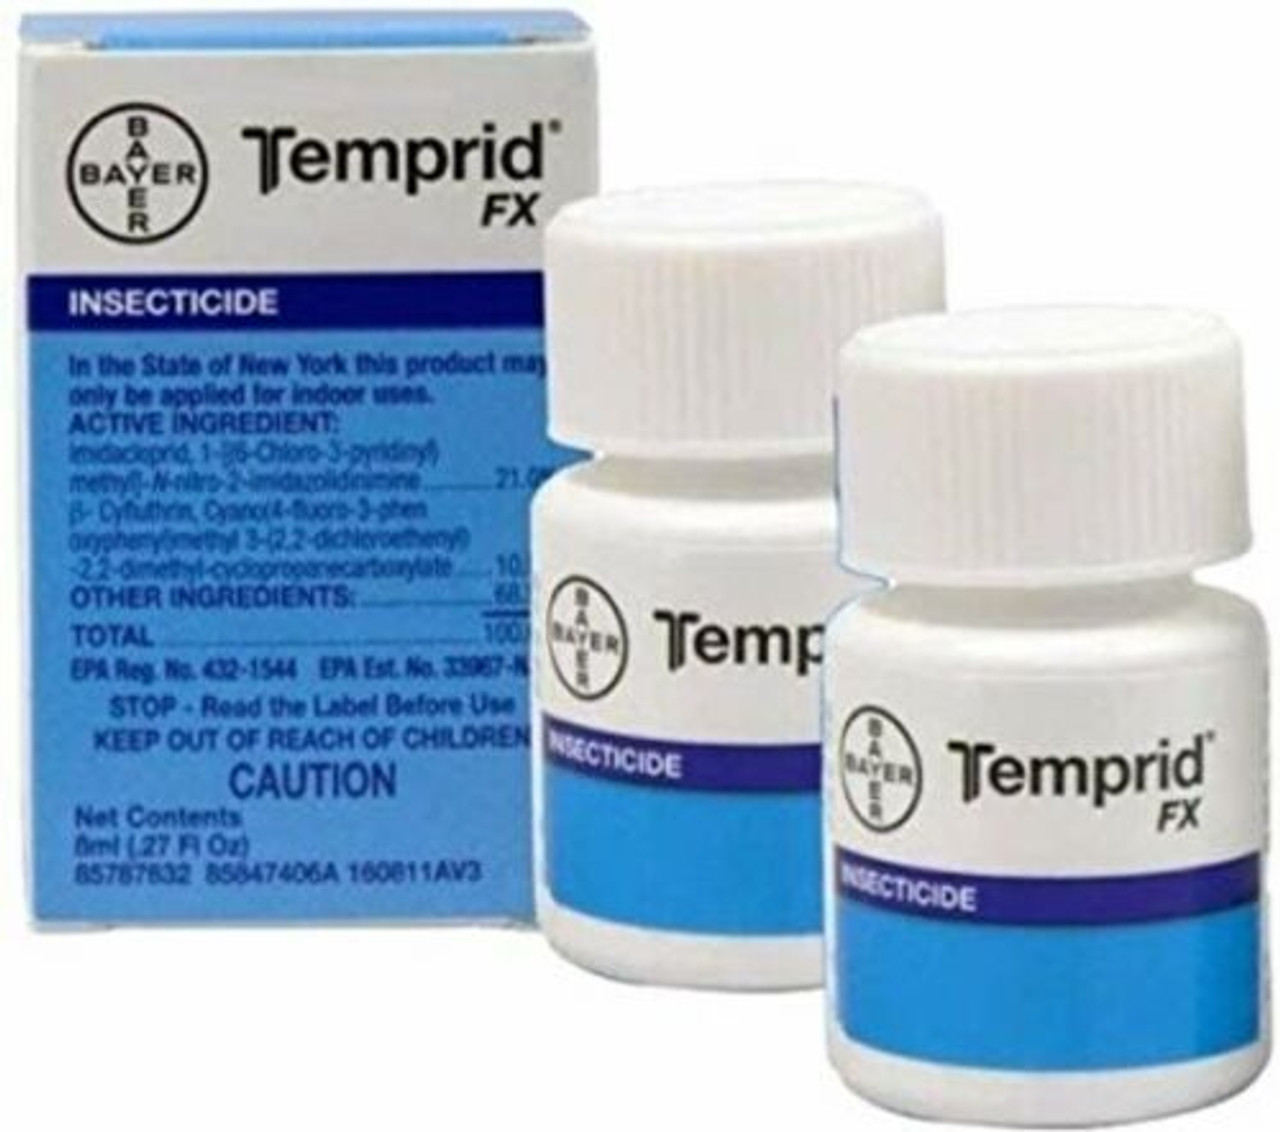 Temprid FX Insecticide 8ml 2 Pack